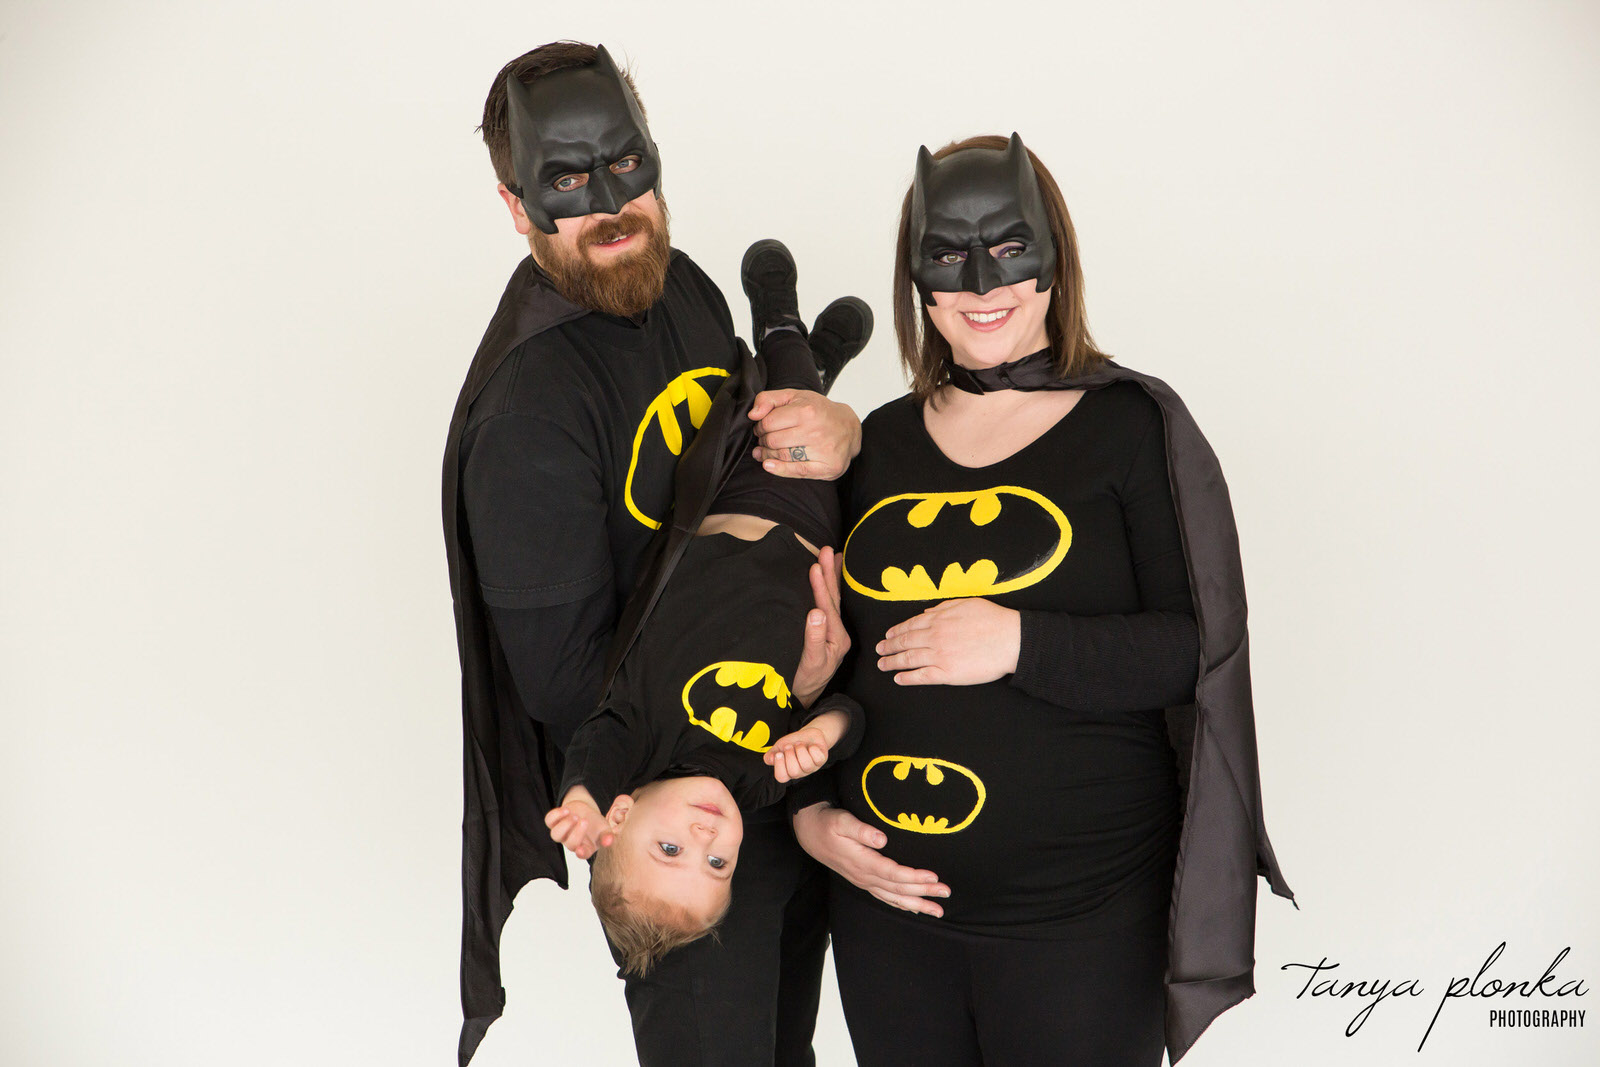 family dressed in Batman outfits pose for maternity photo with toddler held upside down